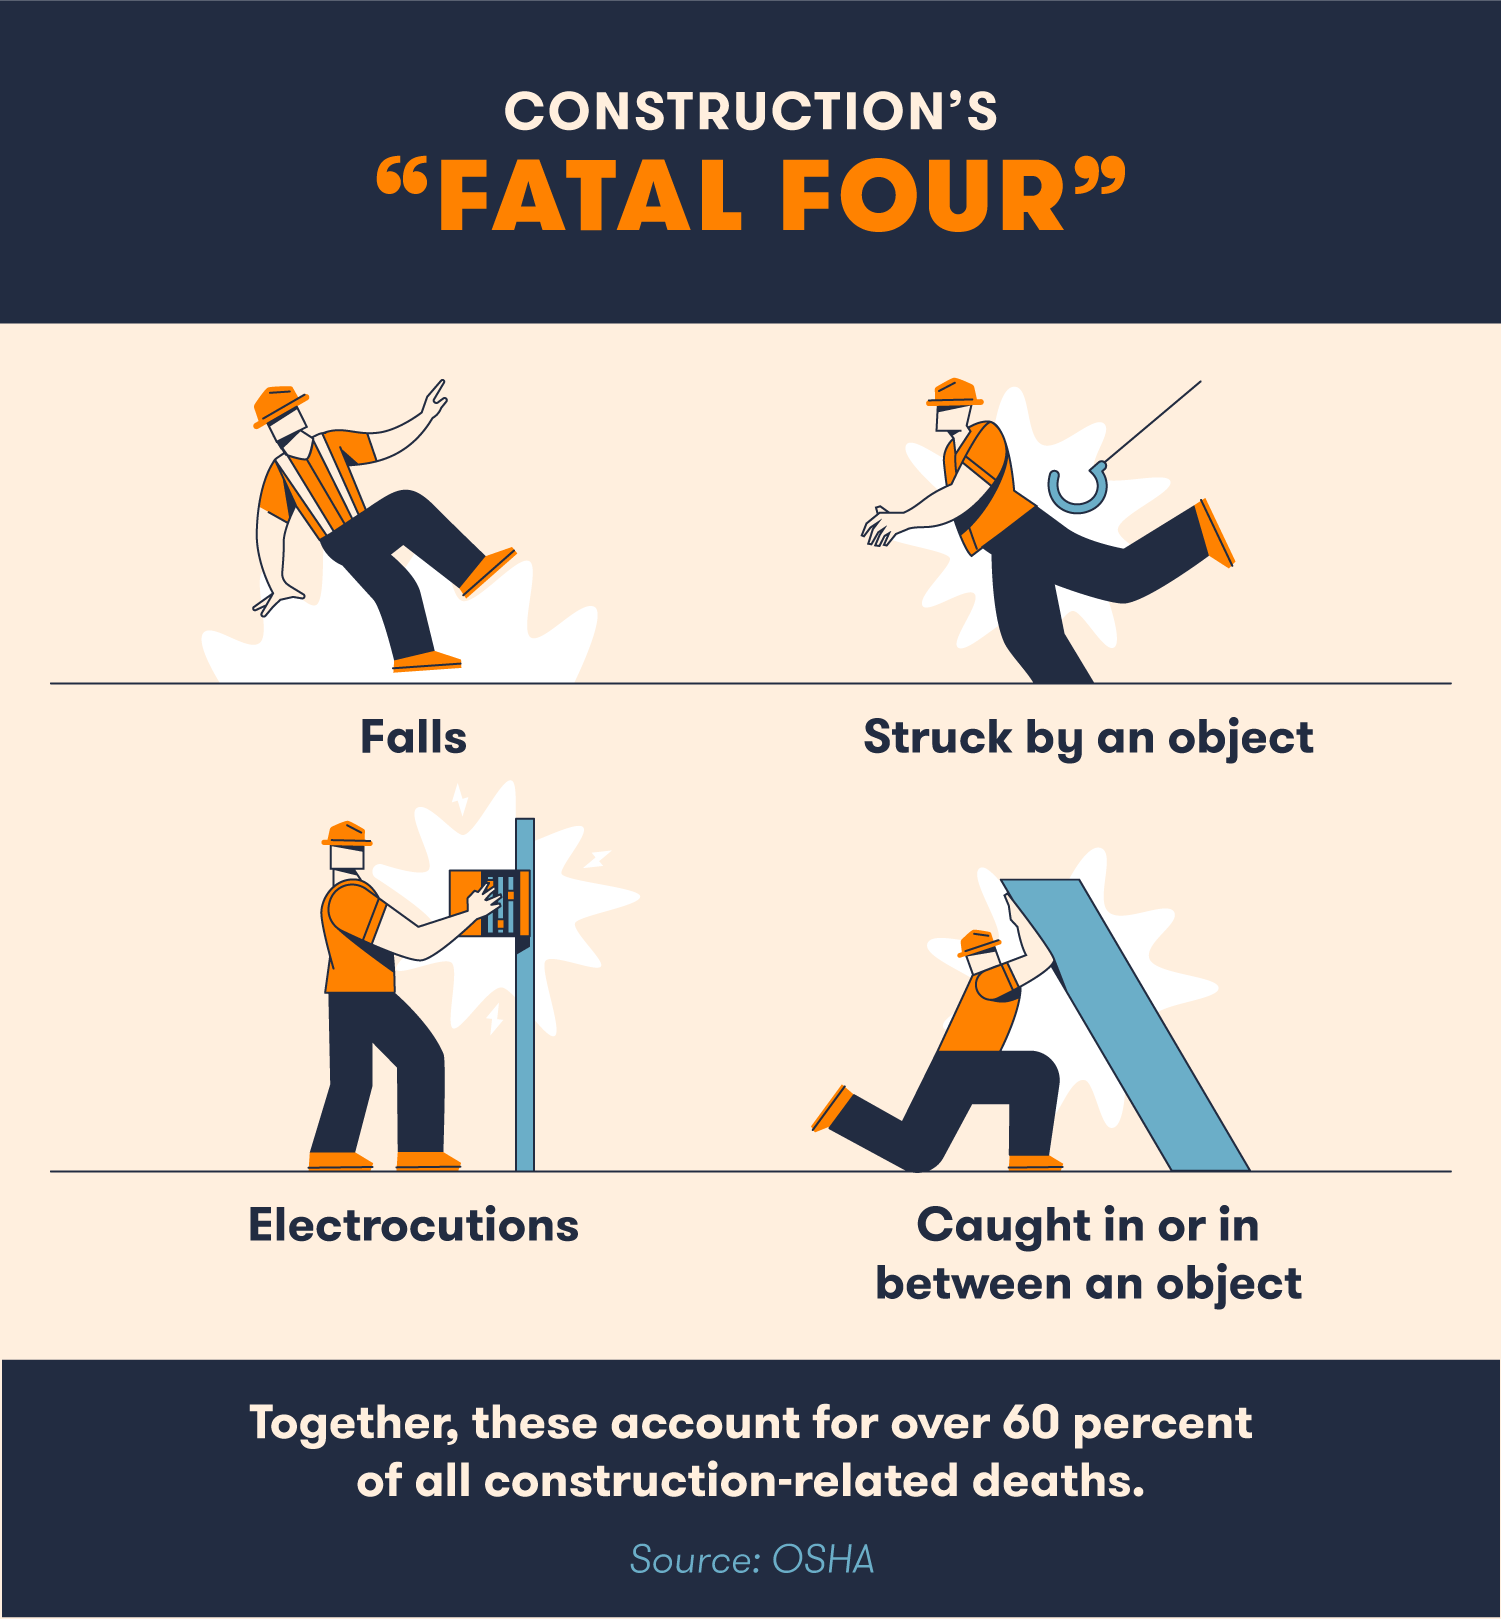 The Fatal Four construction accidents